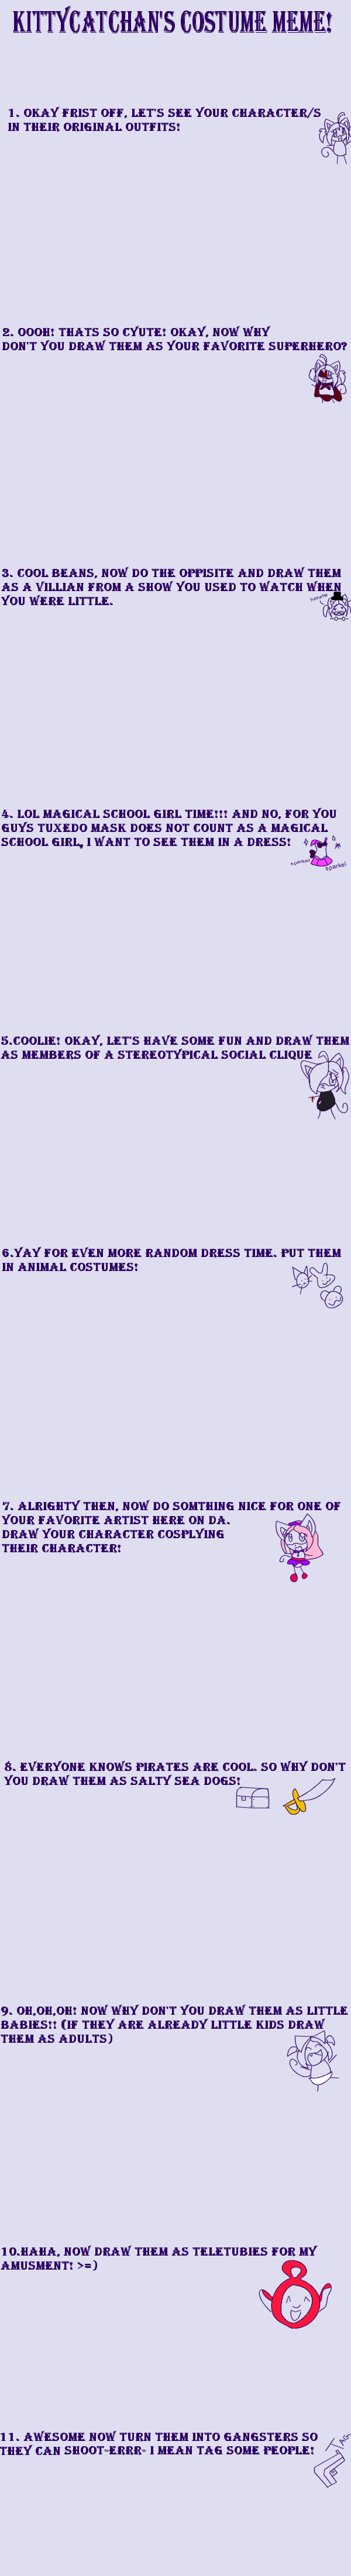 Costume Meme by kittycatchan